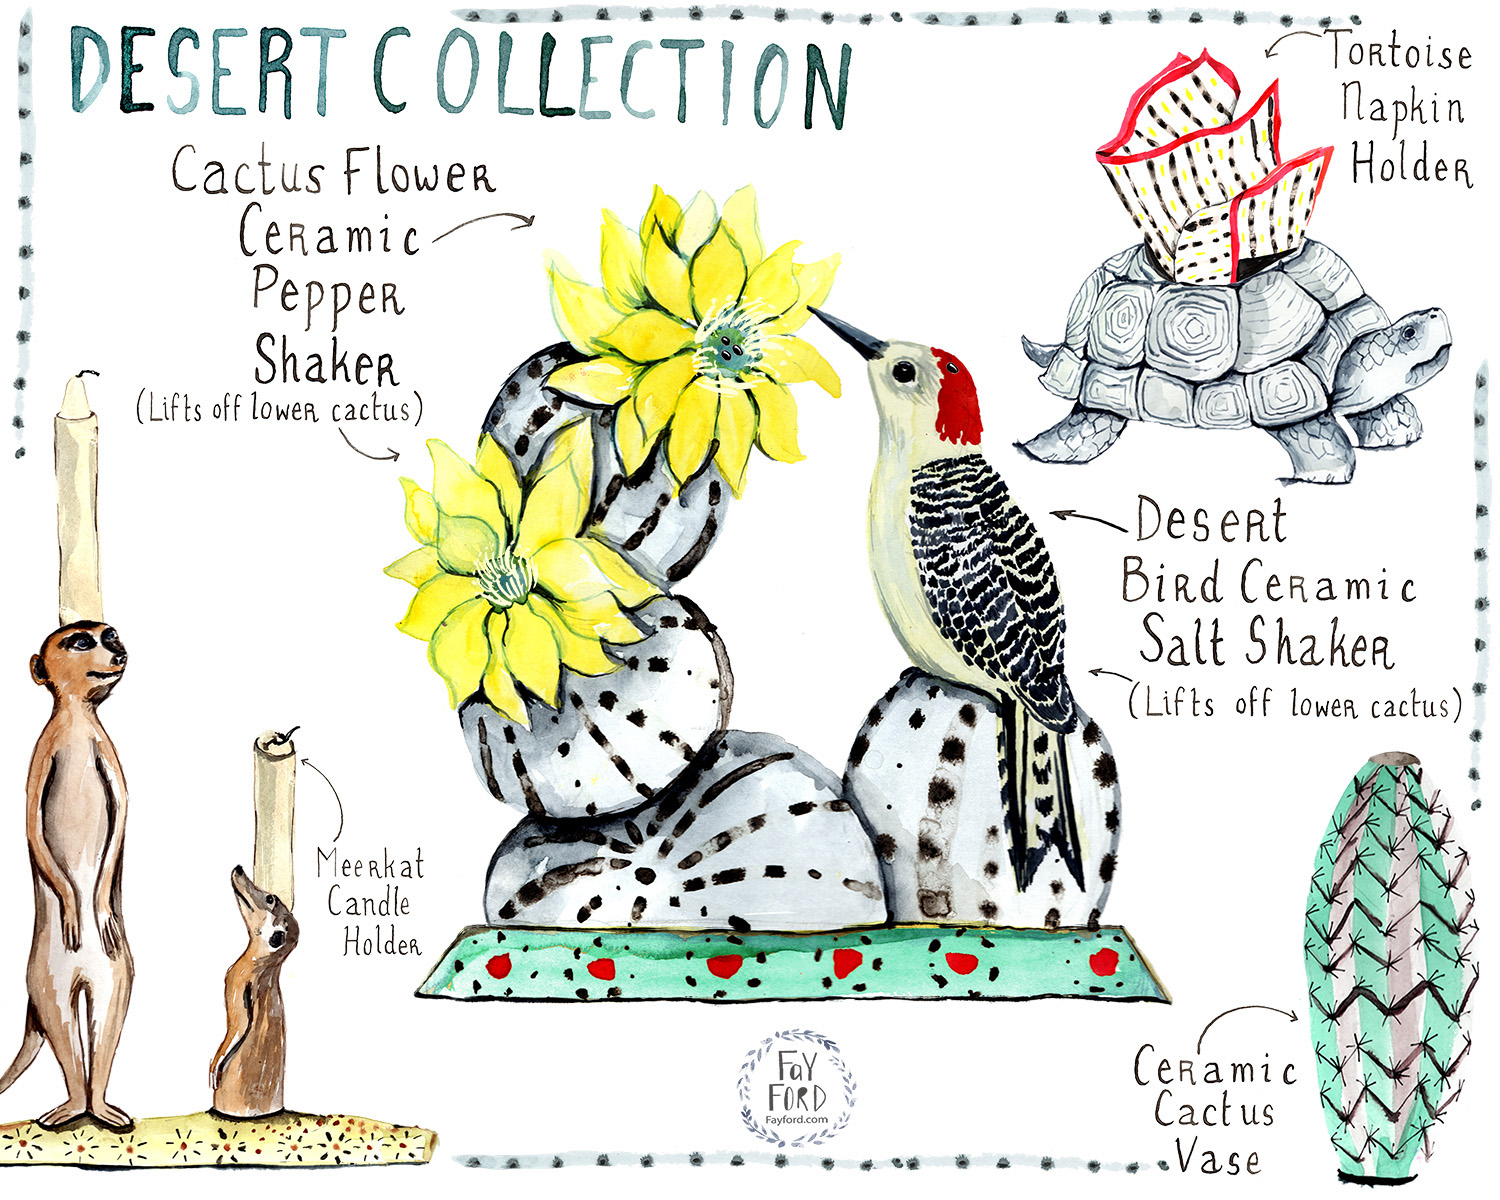 150-desert collection page.jpg